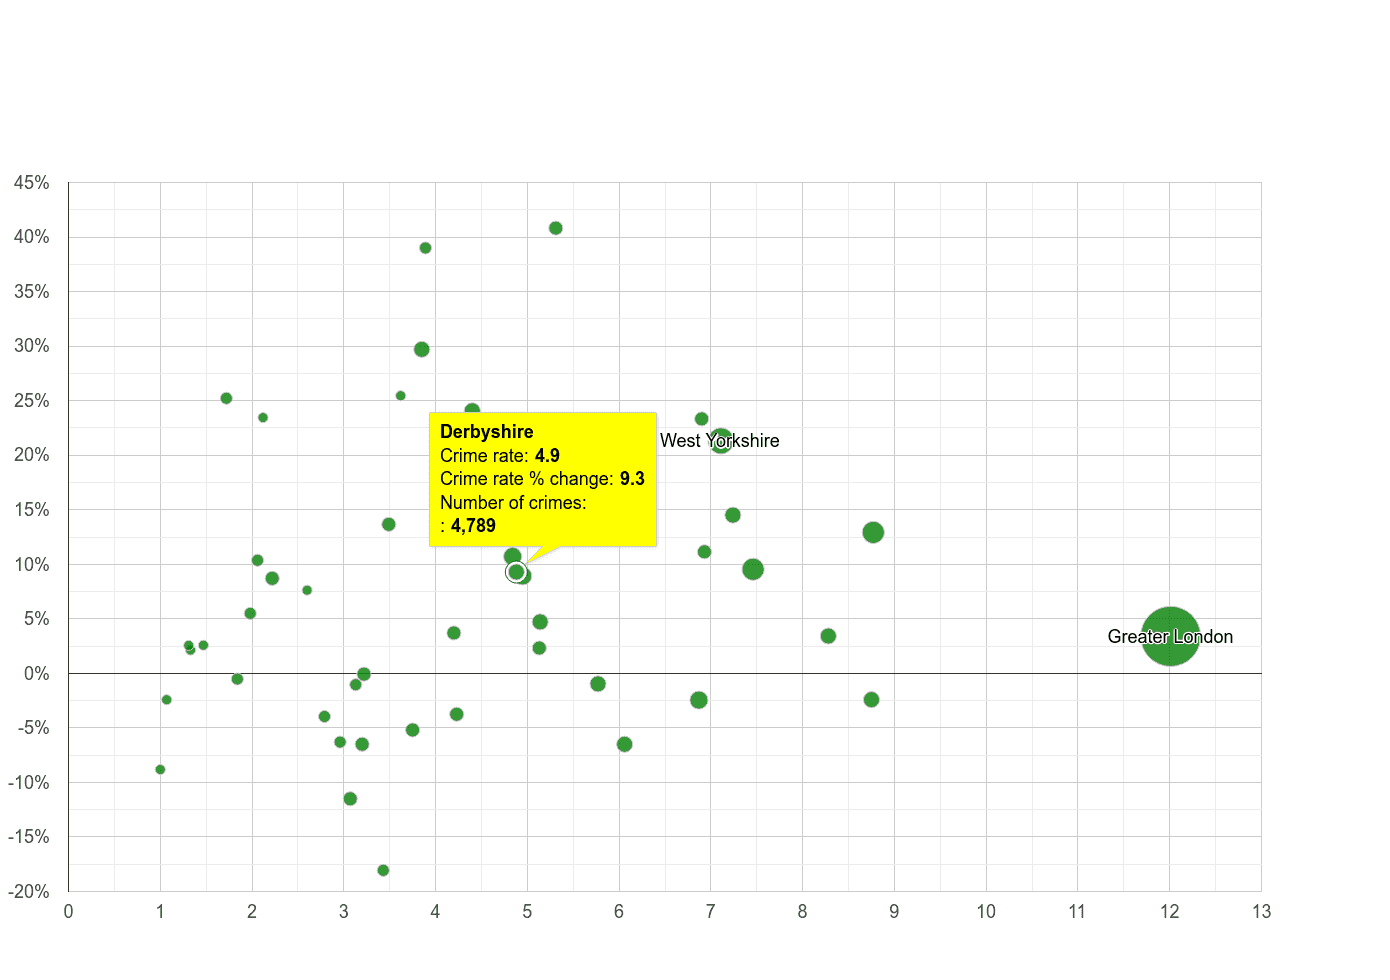 Derbyshire vehicle crime rate compared to other counties